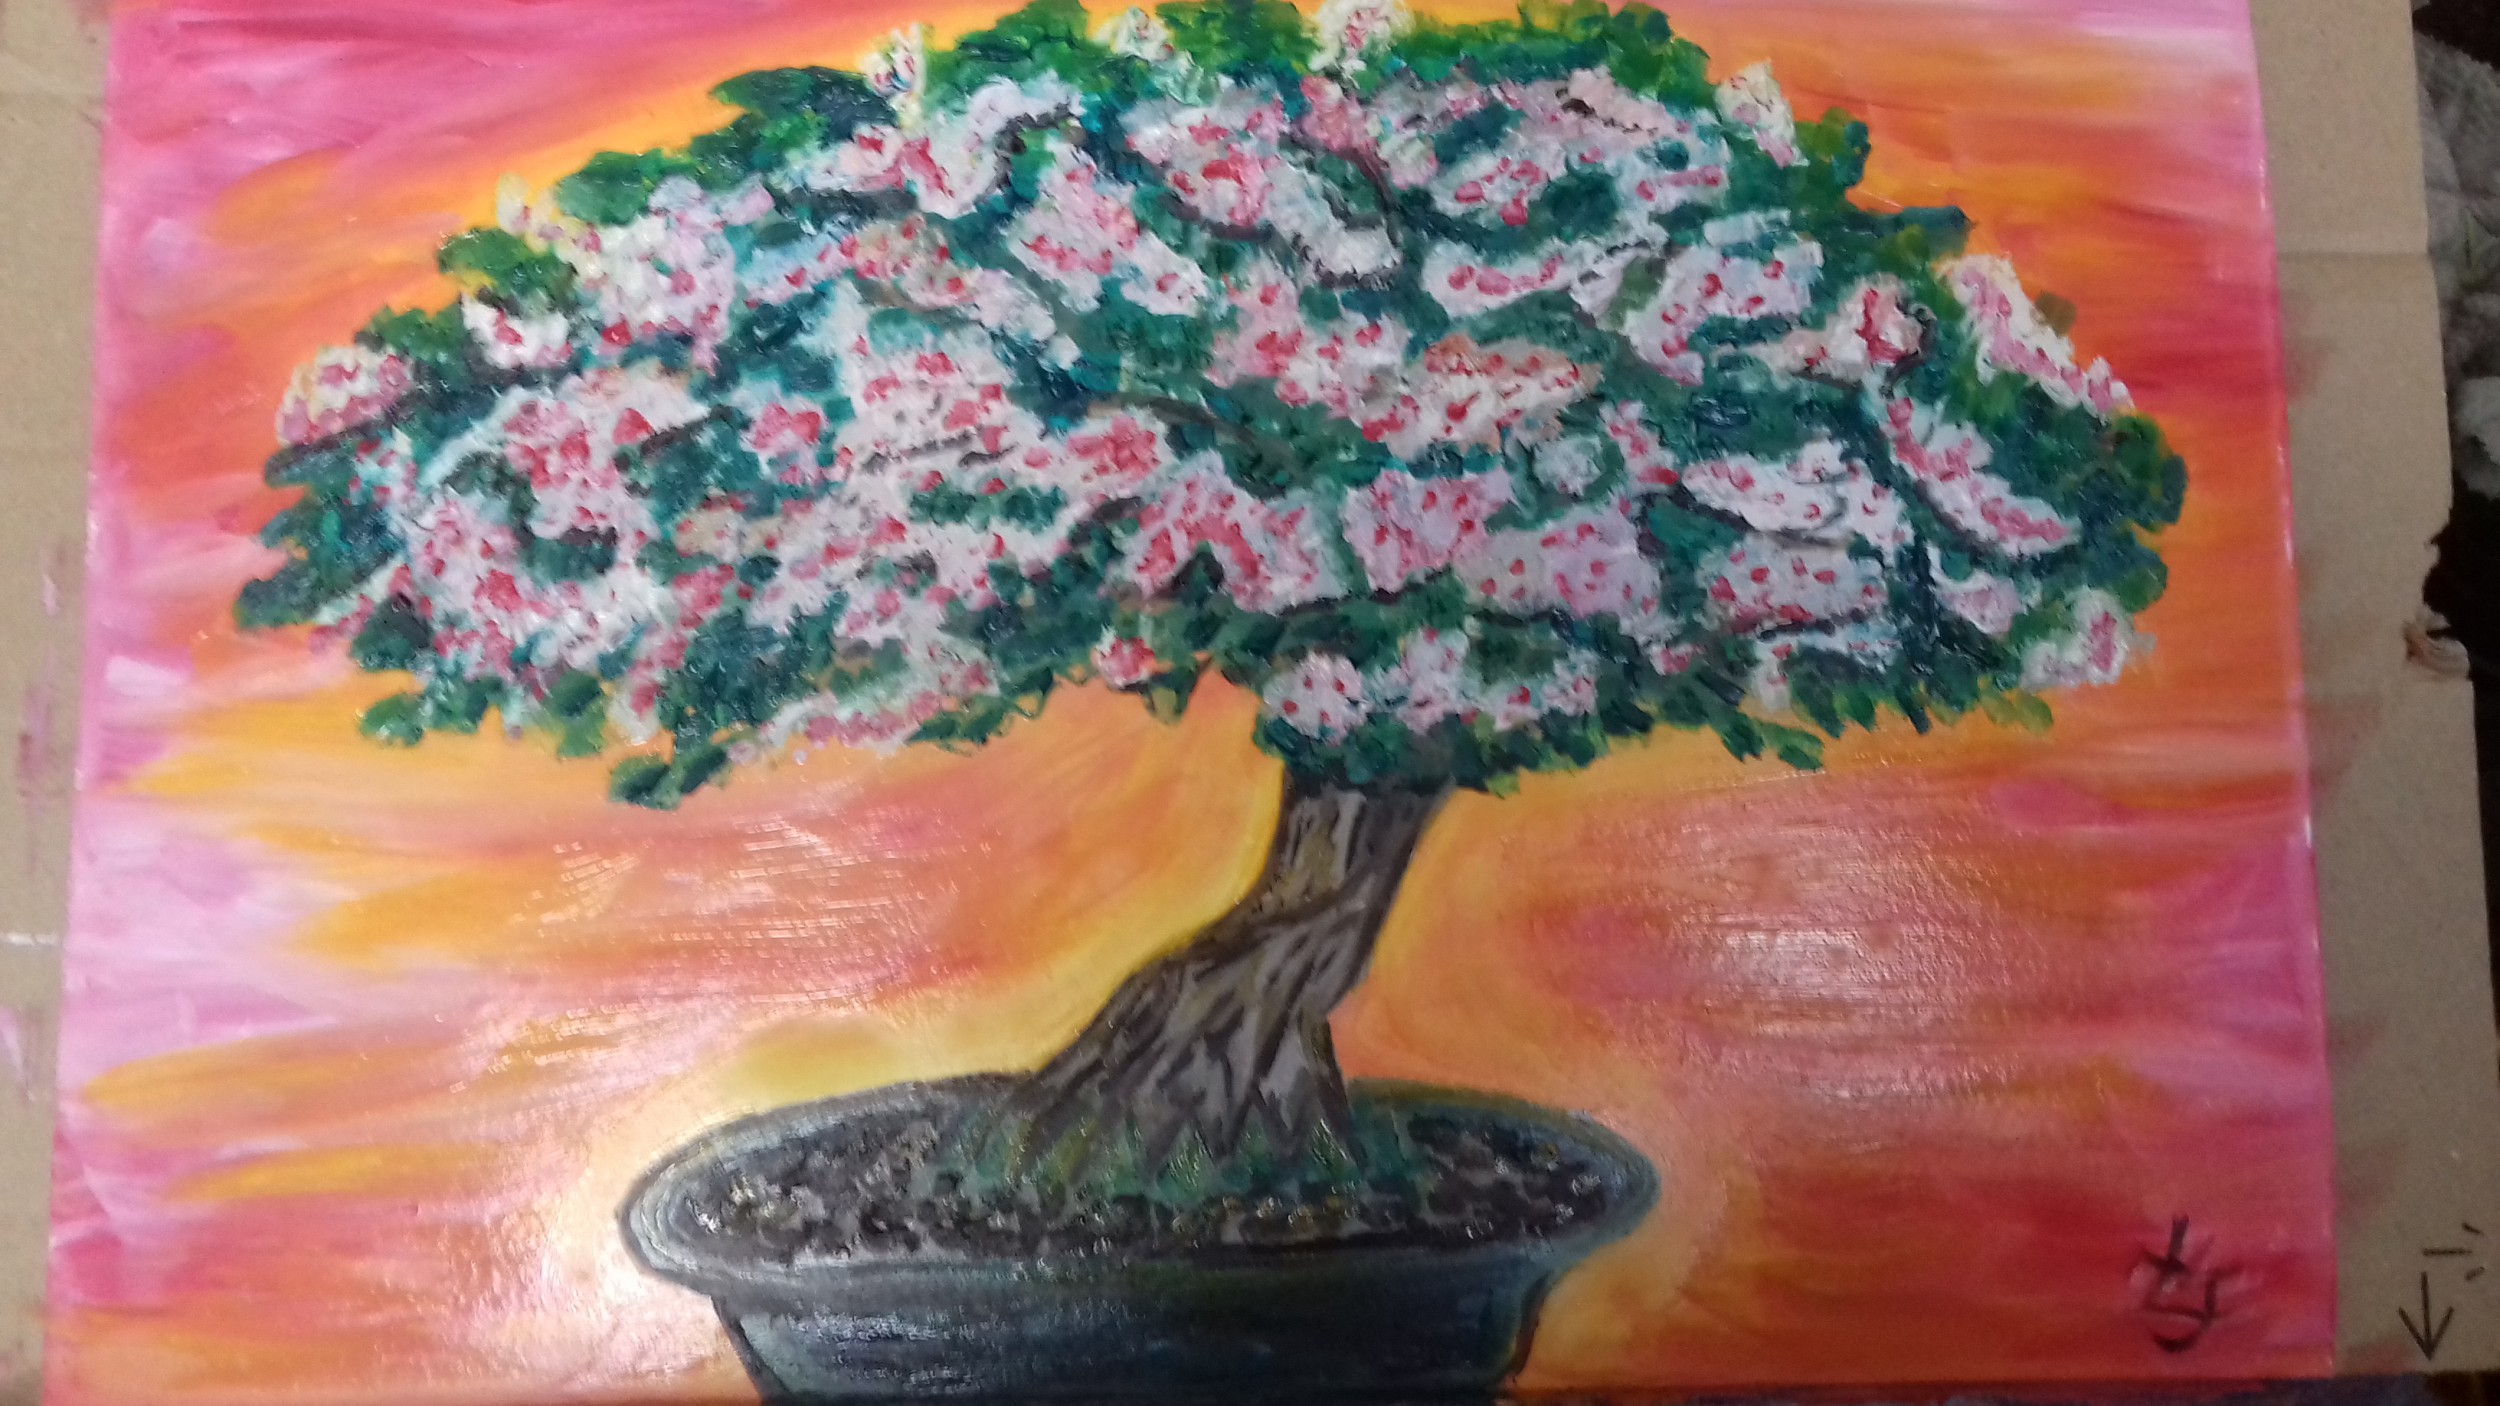 Bonsai Frankfurt fauvism bonsai tree vitality - louise nixon de valois - artwork